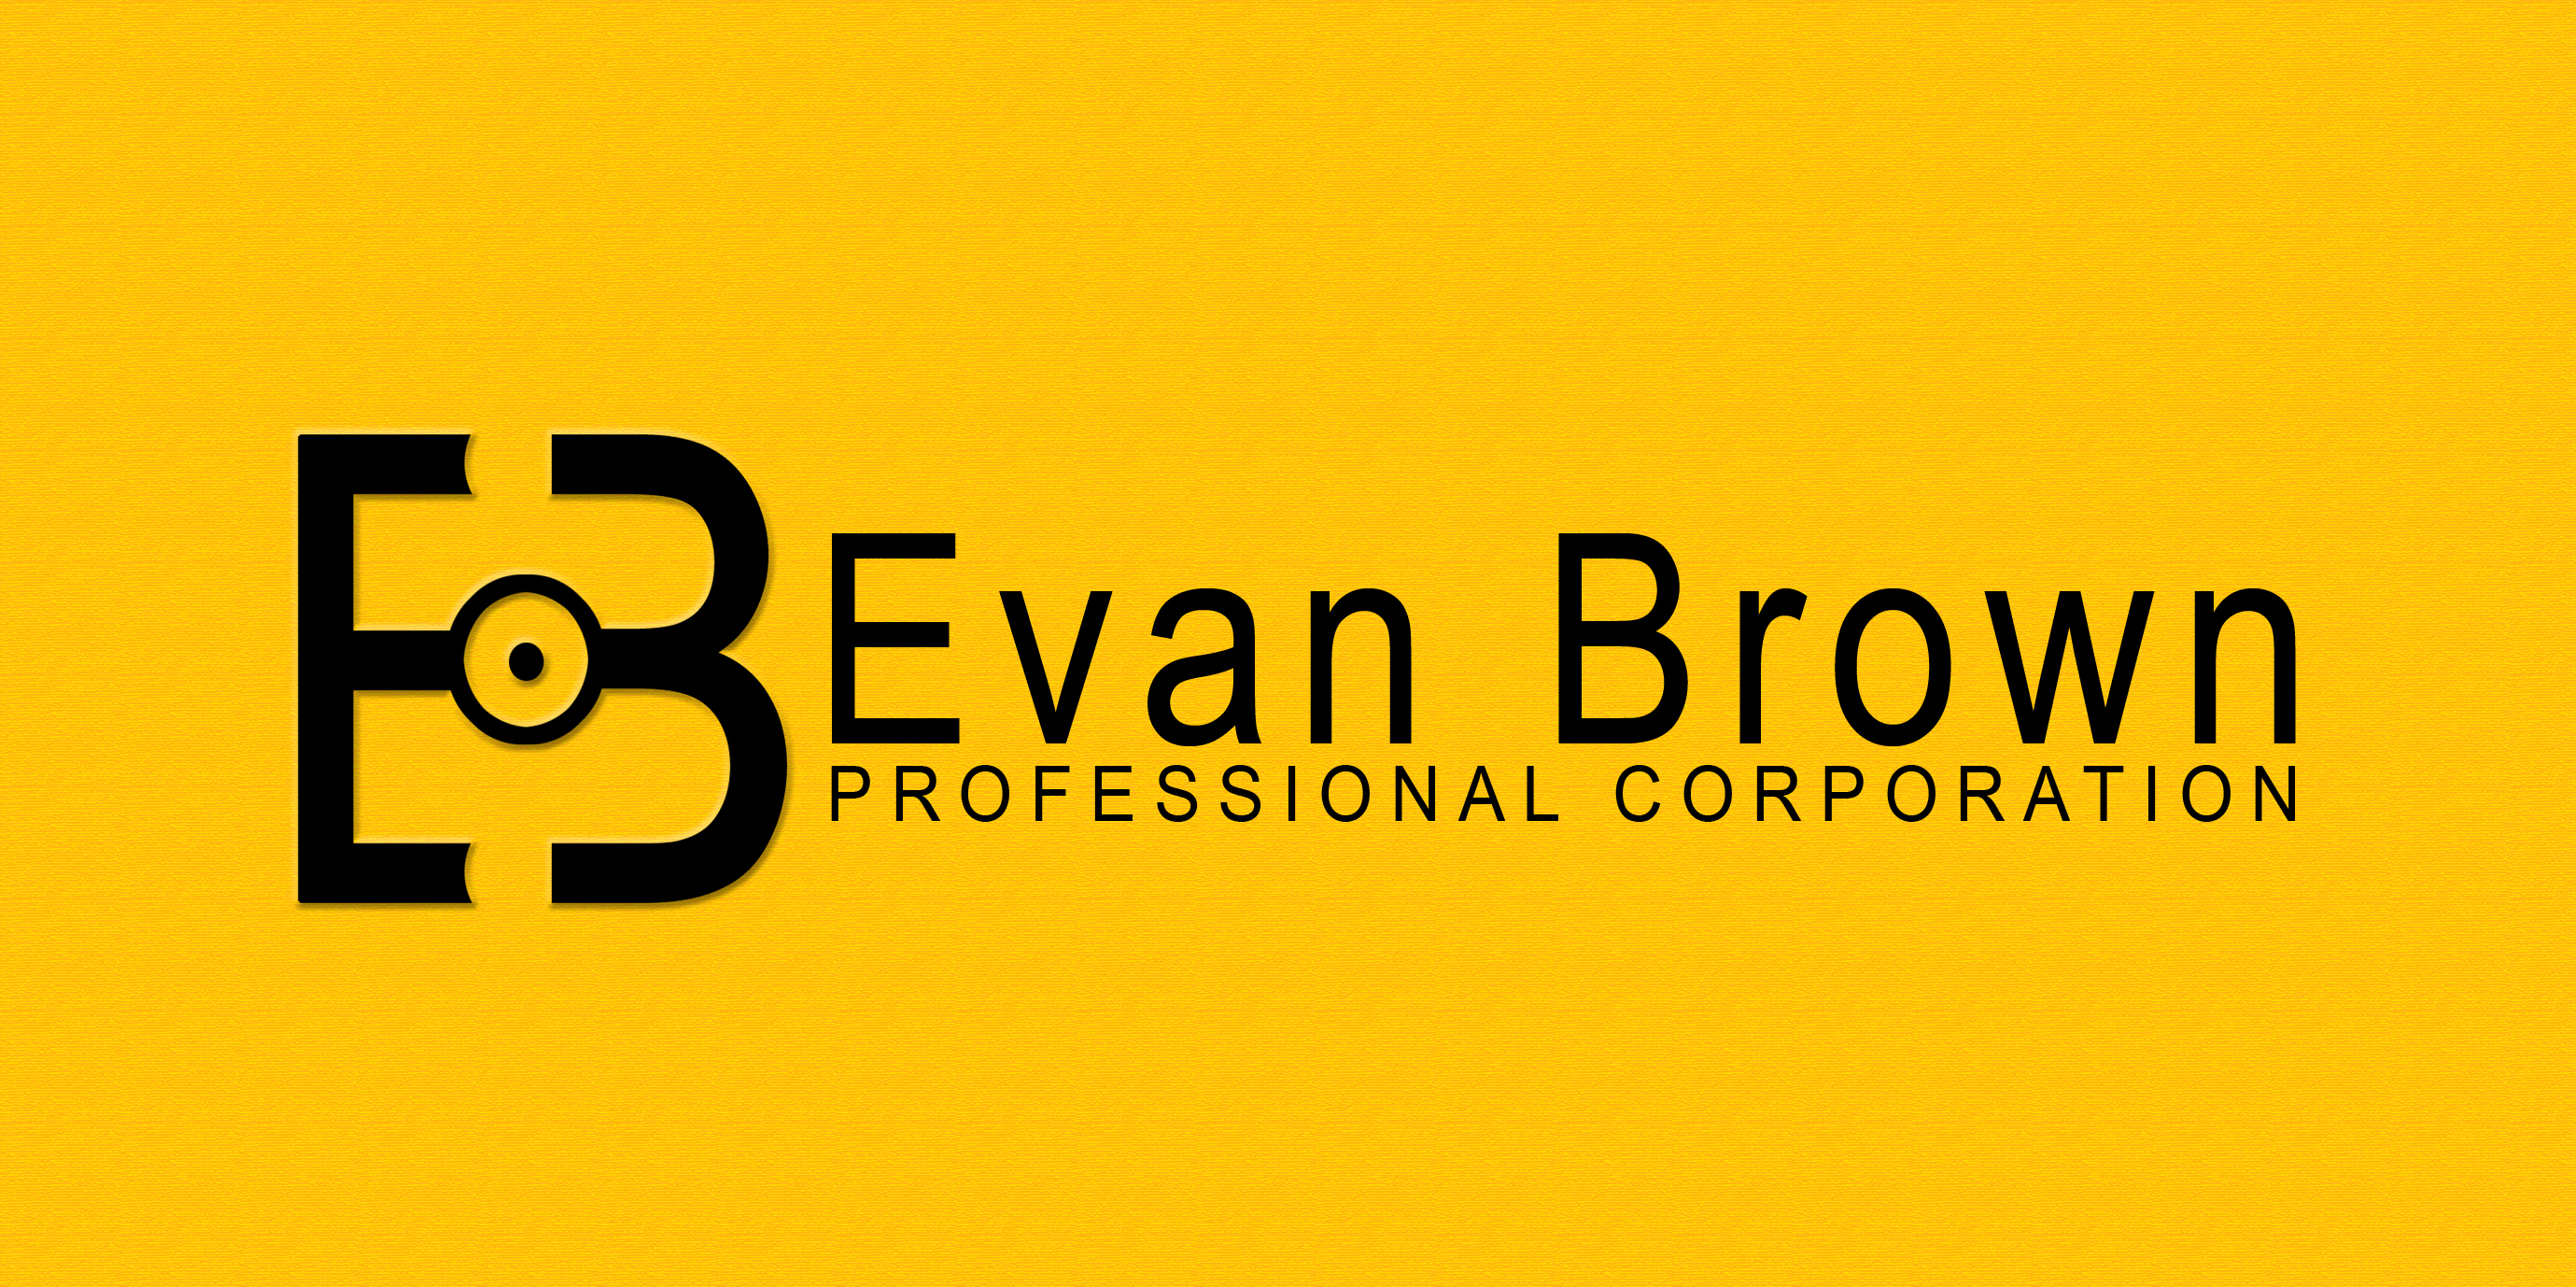 Logo Design by Vineeth K V - Entry No. 42 in the Logo Design Contest Inspiring Logo Design for Evan Brown Professional Corporation.